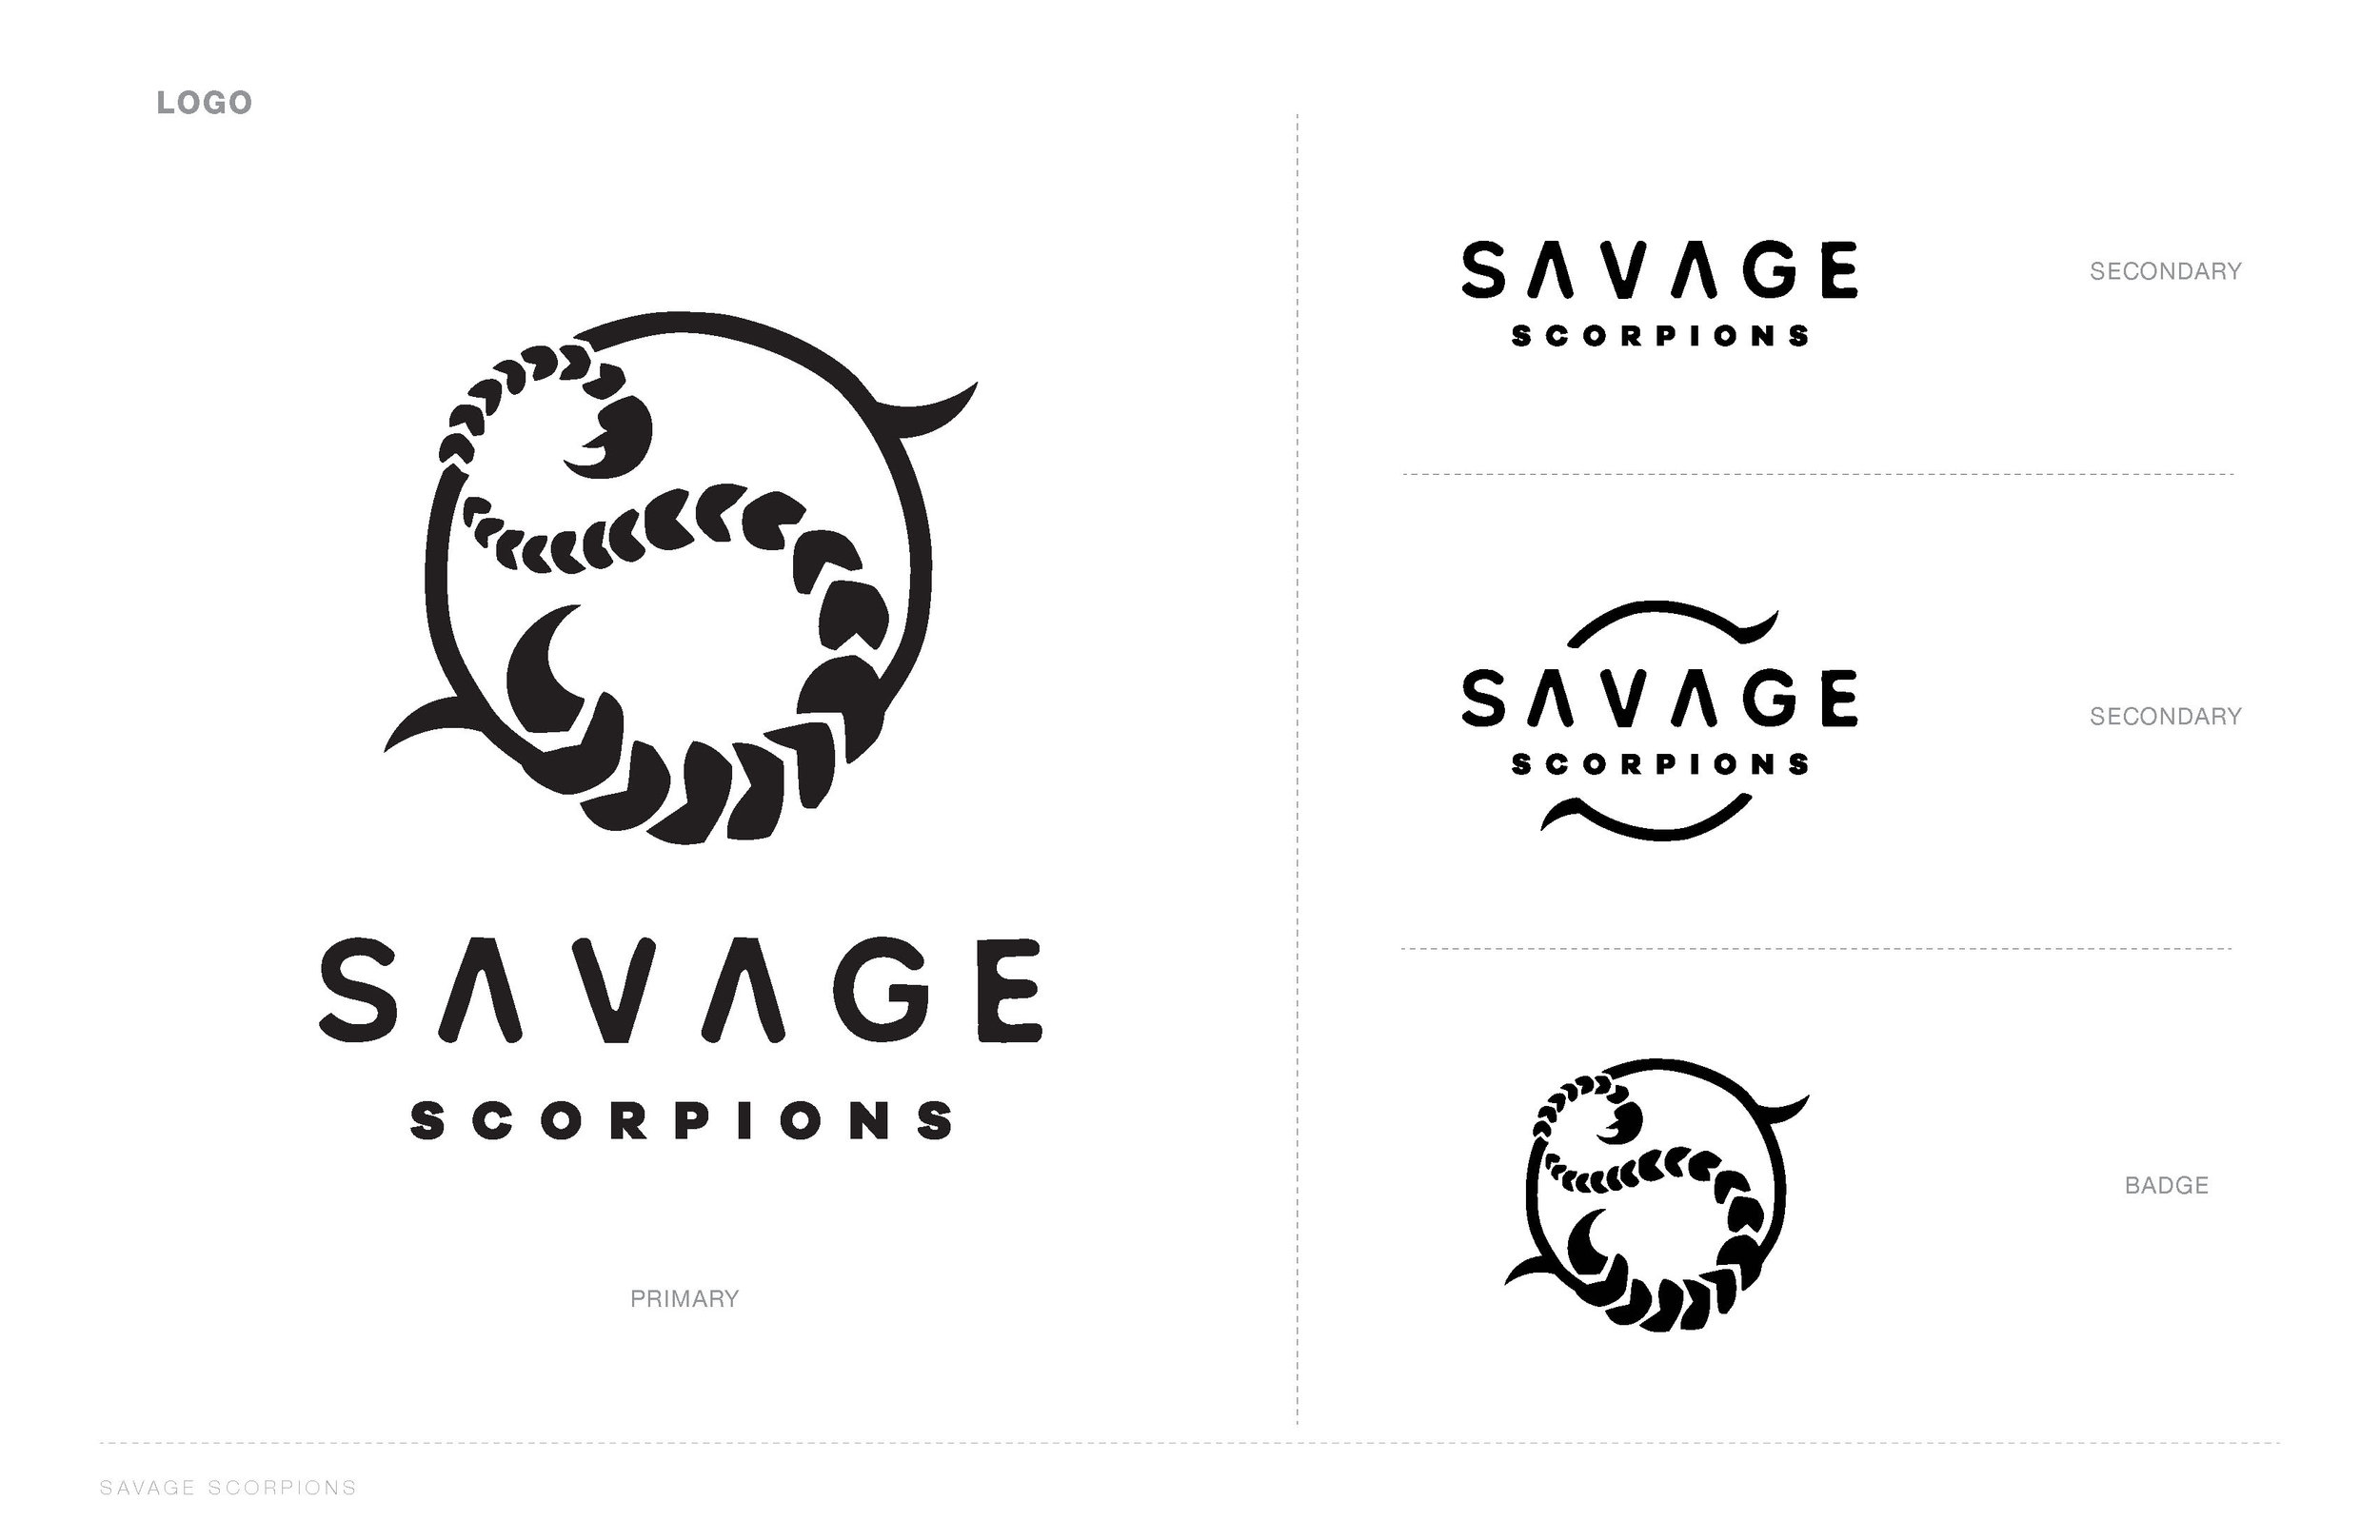 Savage Scorpions_Brand Elements_SCREEN_Page_03.jpg